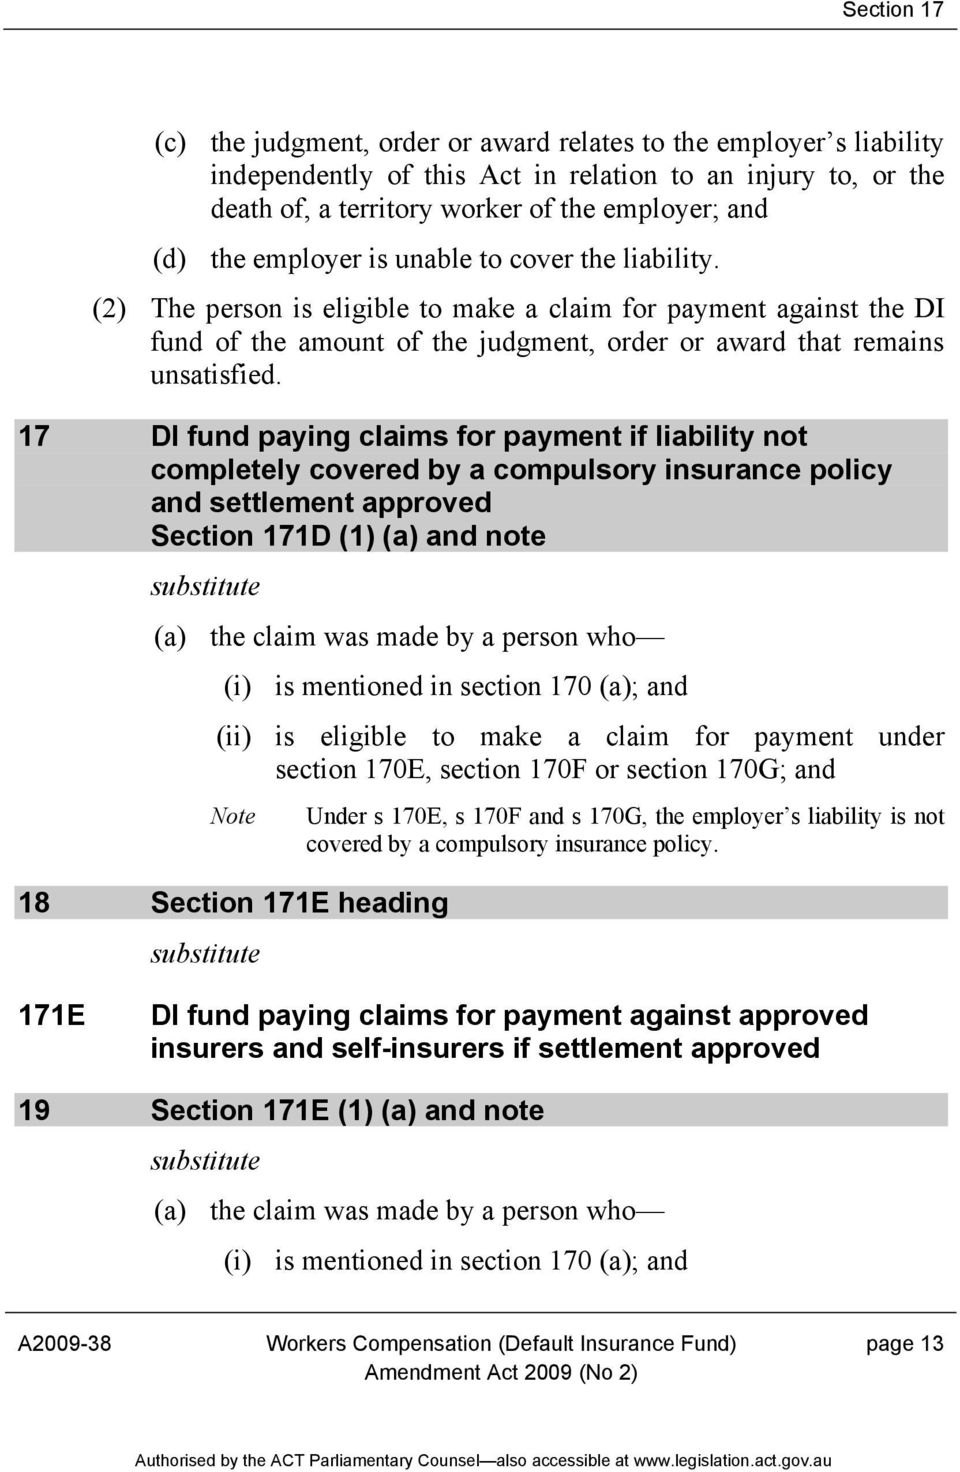 17 DI fund paying claims for payment if liability not completely covered by a compulsory insurance policy and settlement approved Section 171D (1) (a) and note substitute (a) the claim was made by a